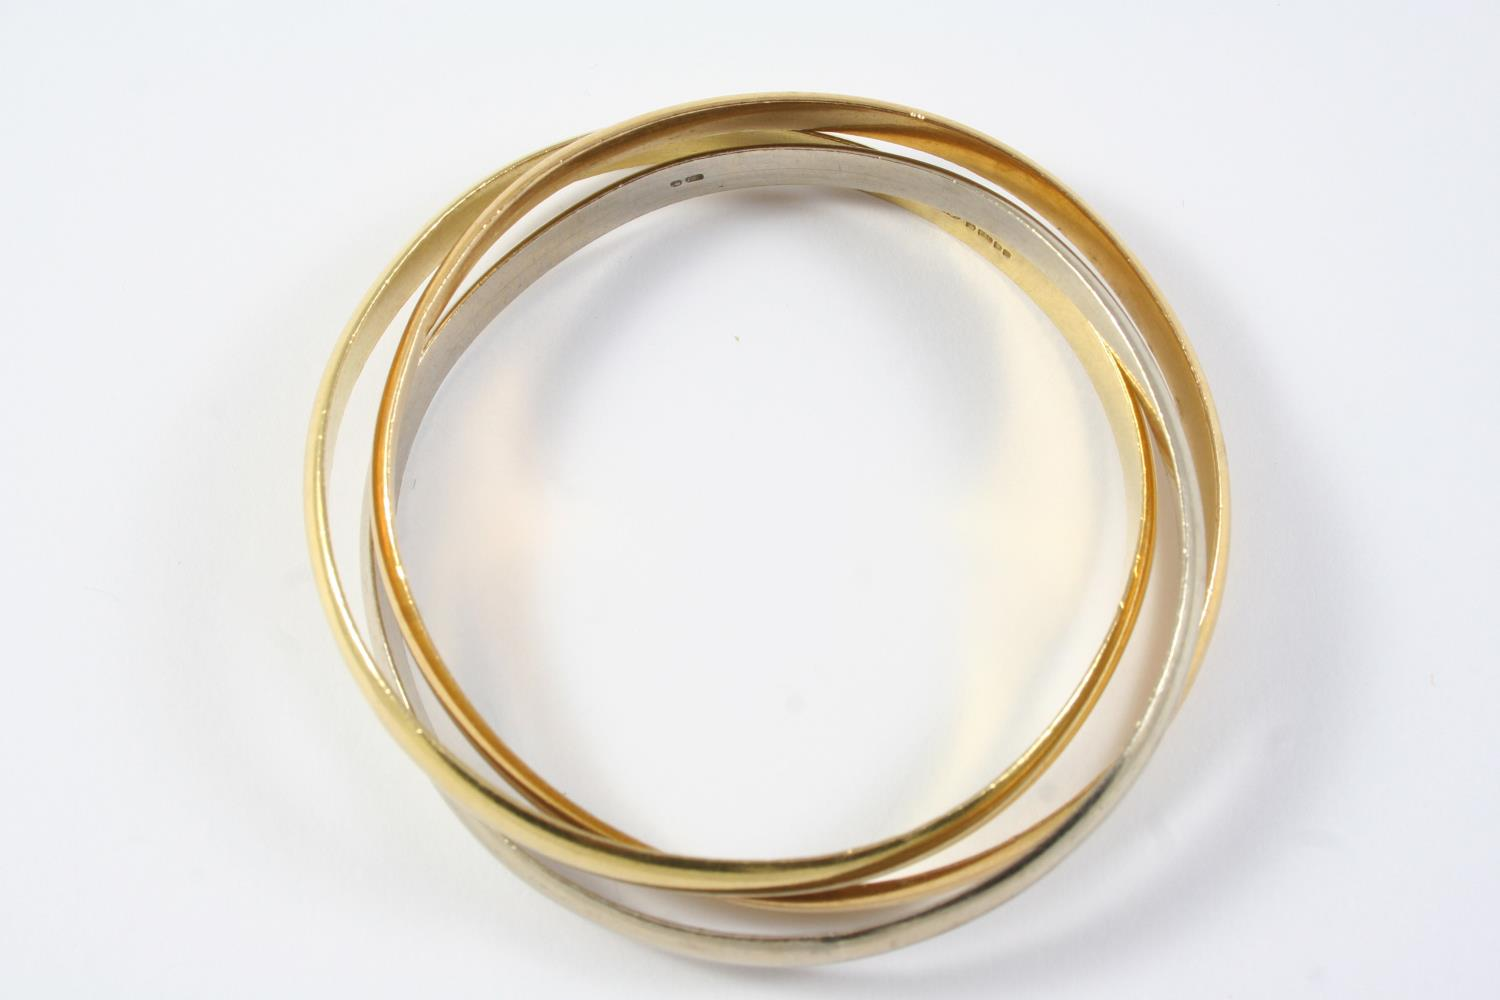 AN 18CT TWO COLOUR GOLD TRIPLE BAND BANGLE formed with three interlocking gold bands, two yellow